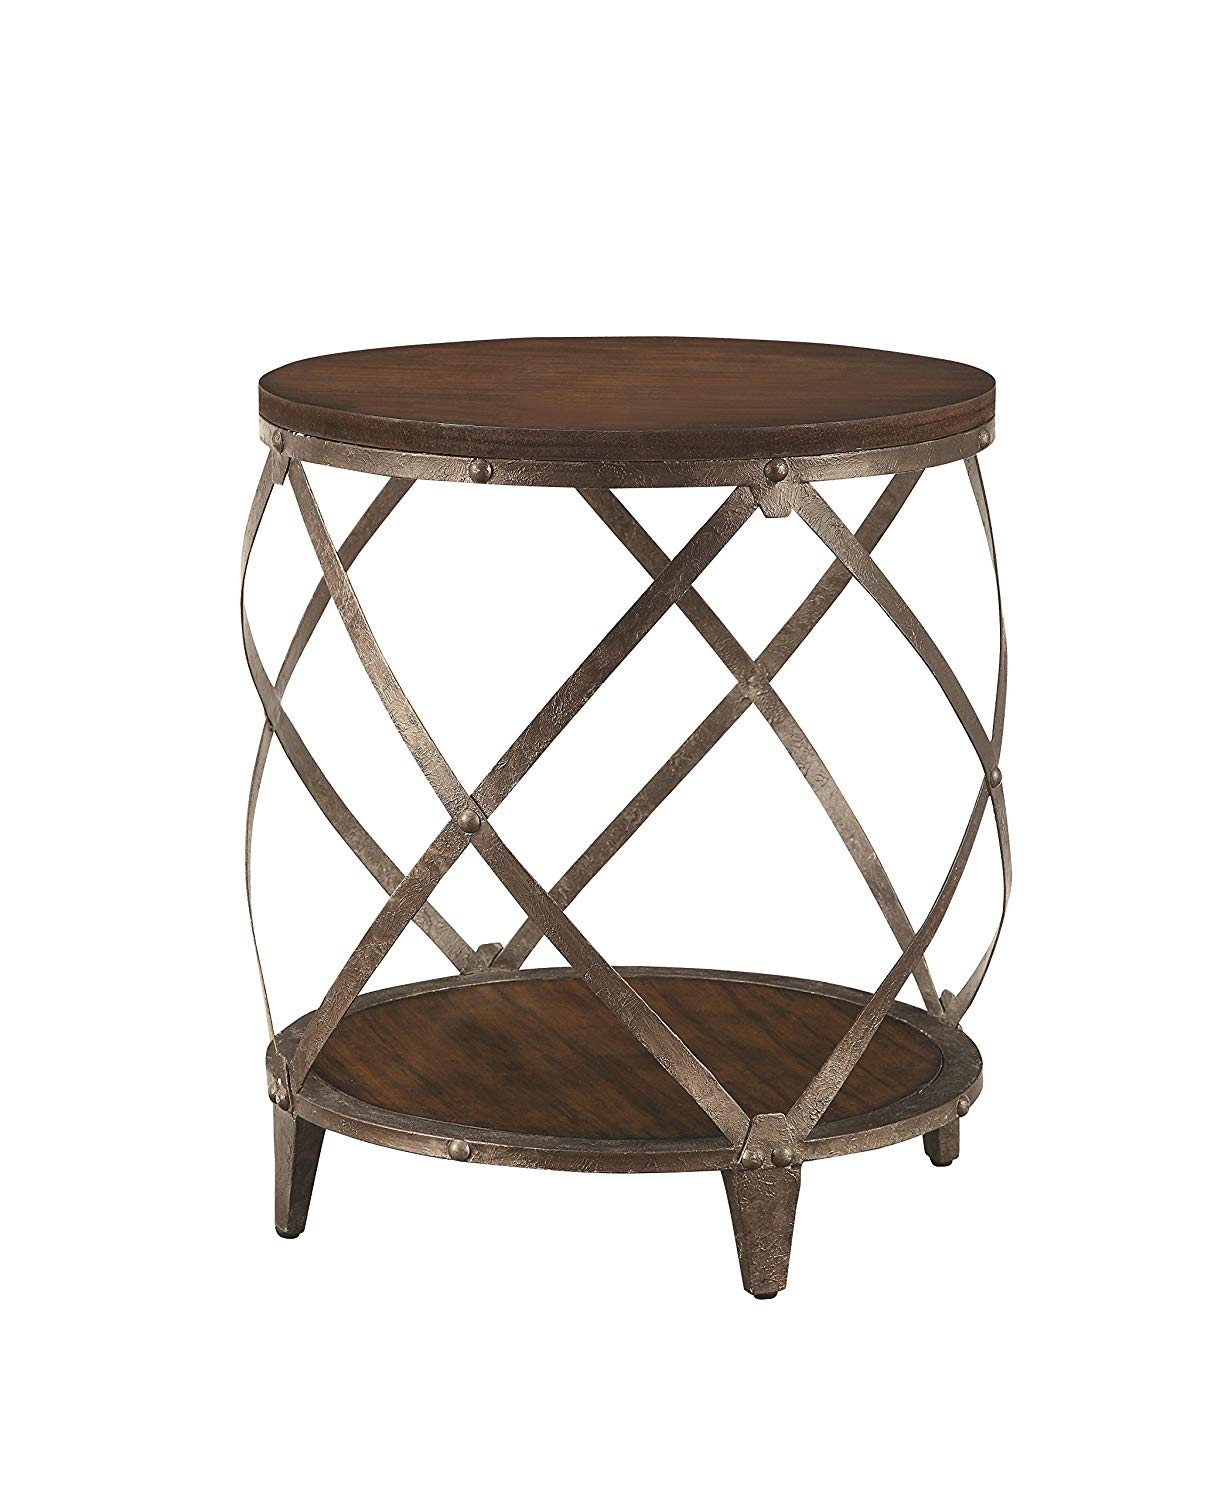 metal accent table with drum shape brown kitchen dining wood side outdoor furniture ideas diy tablecloth for small round mid century chairs trestle bench seat matching bedside